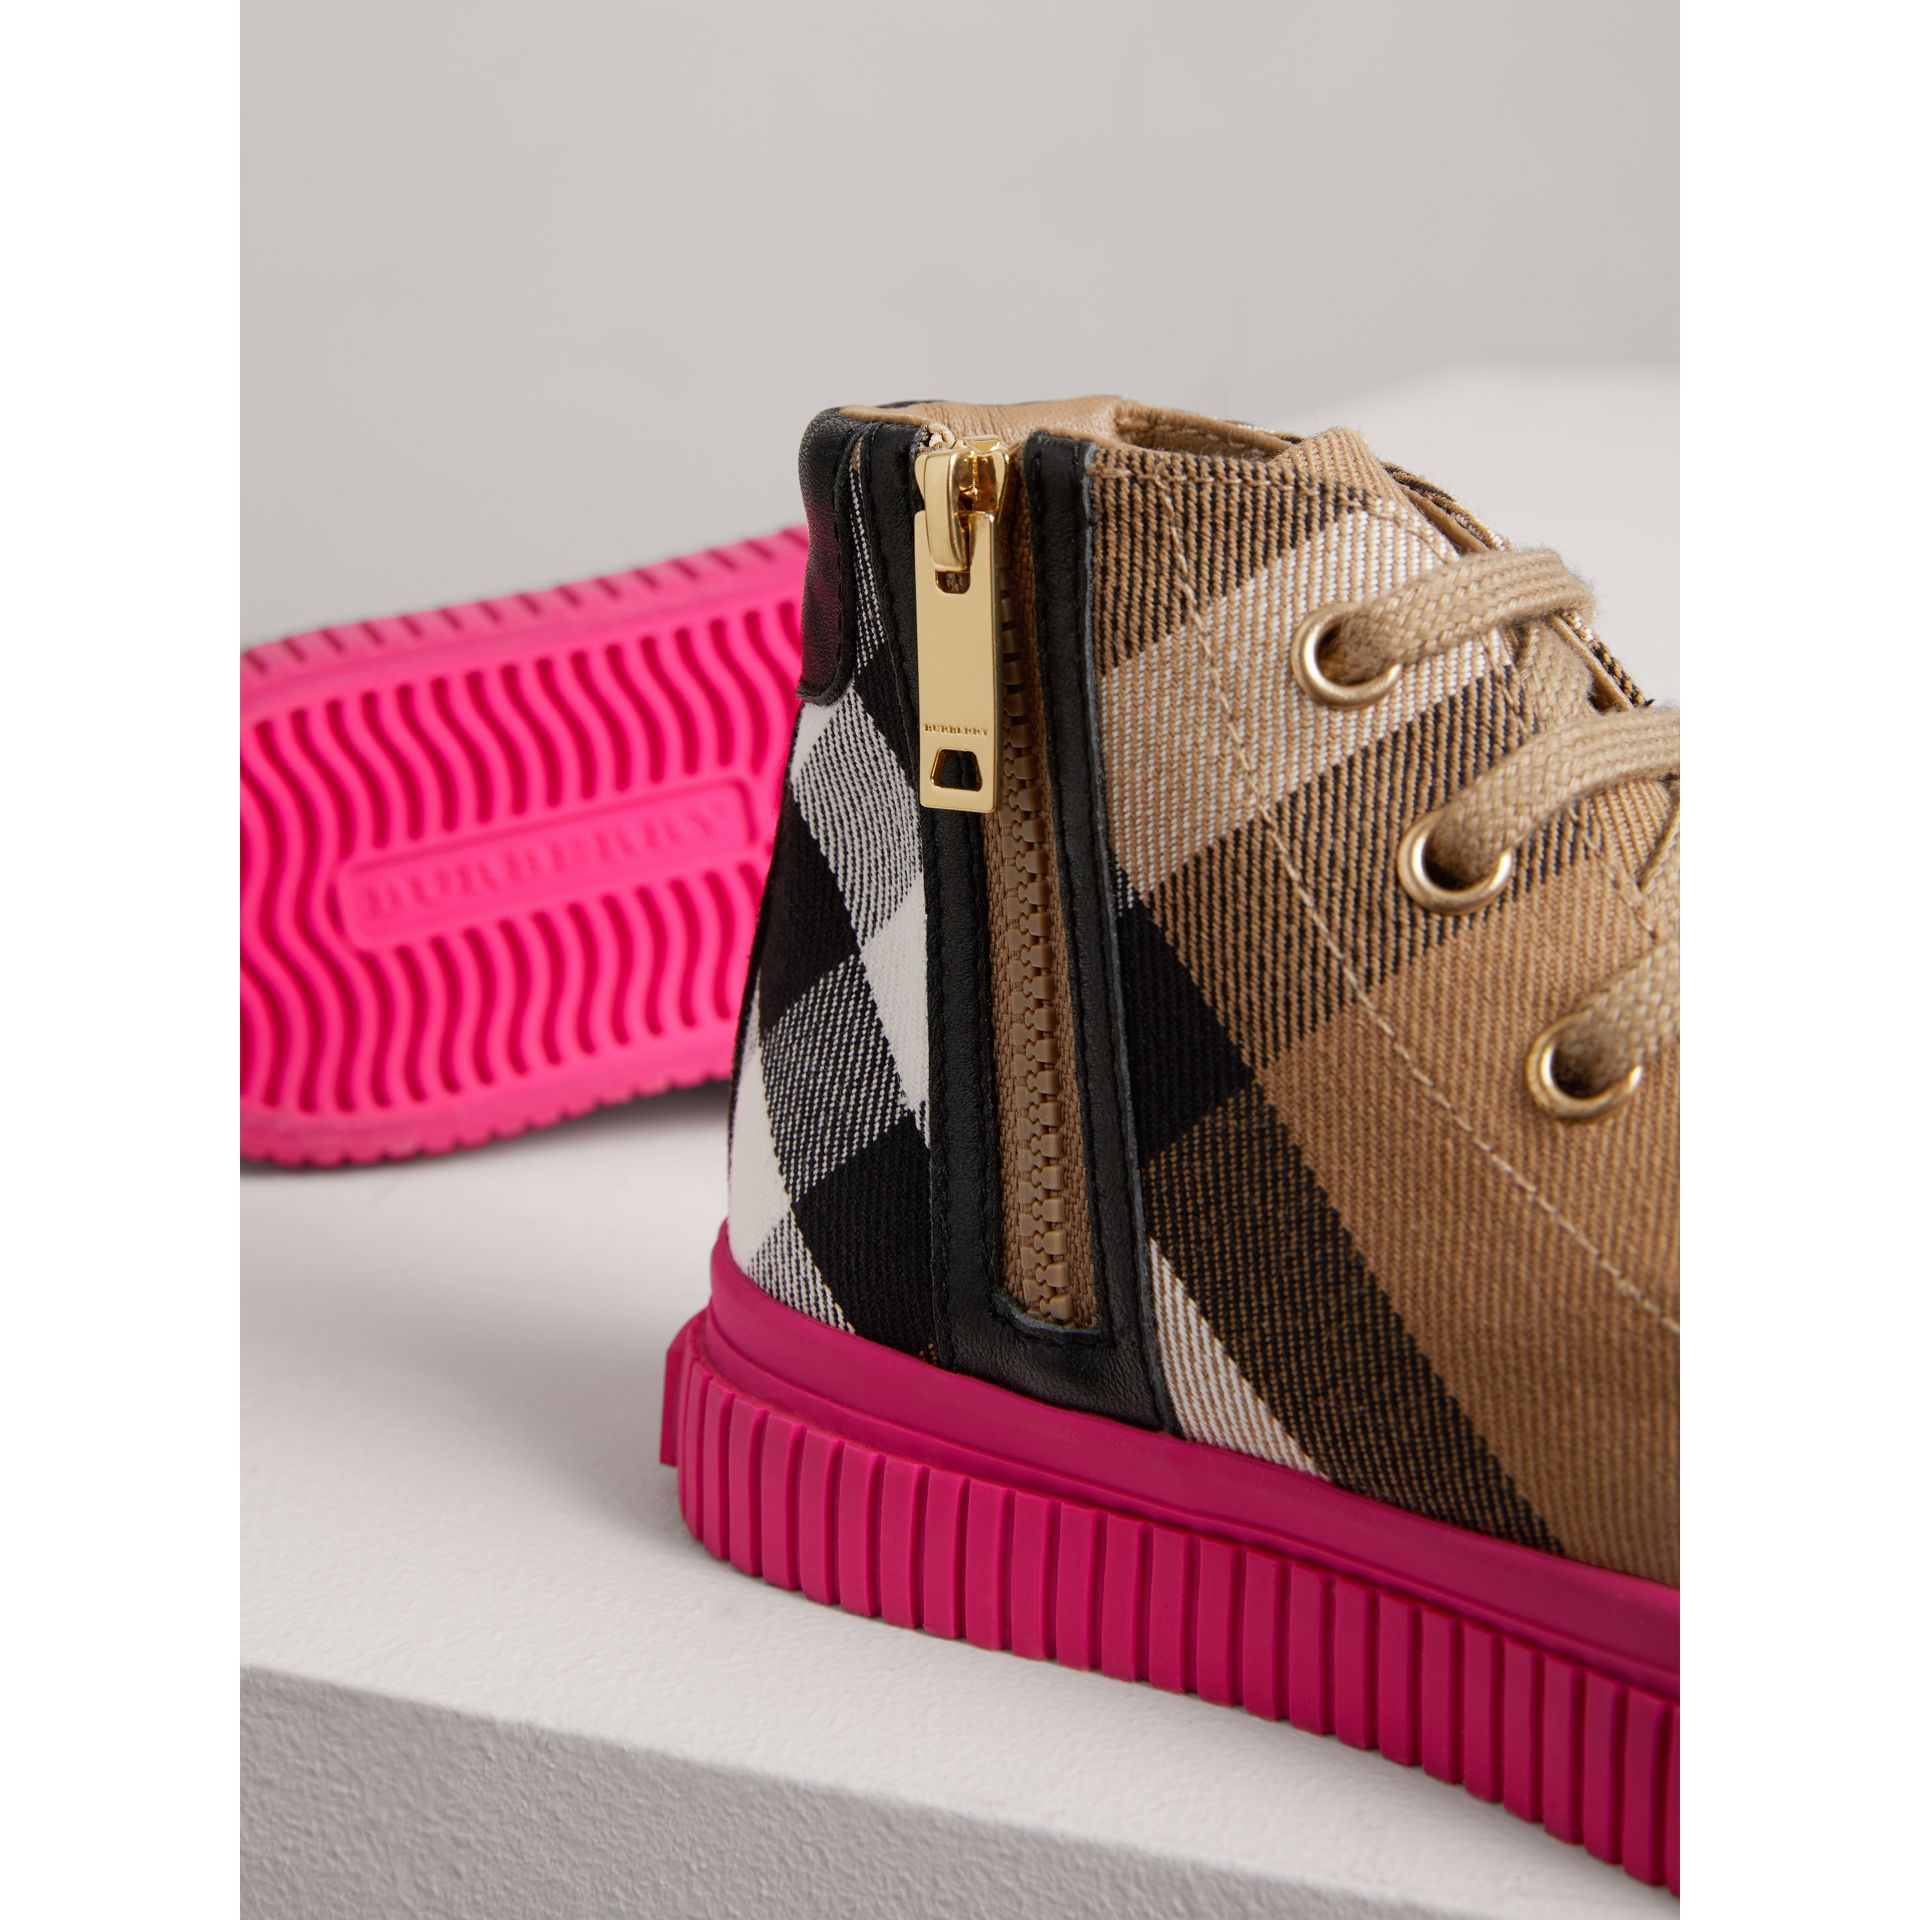 House Check and Leather Trainers in Classic/neon Pink | Burberry United Kingdom - gallery image 1